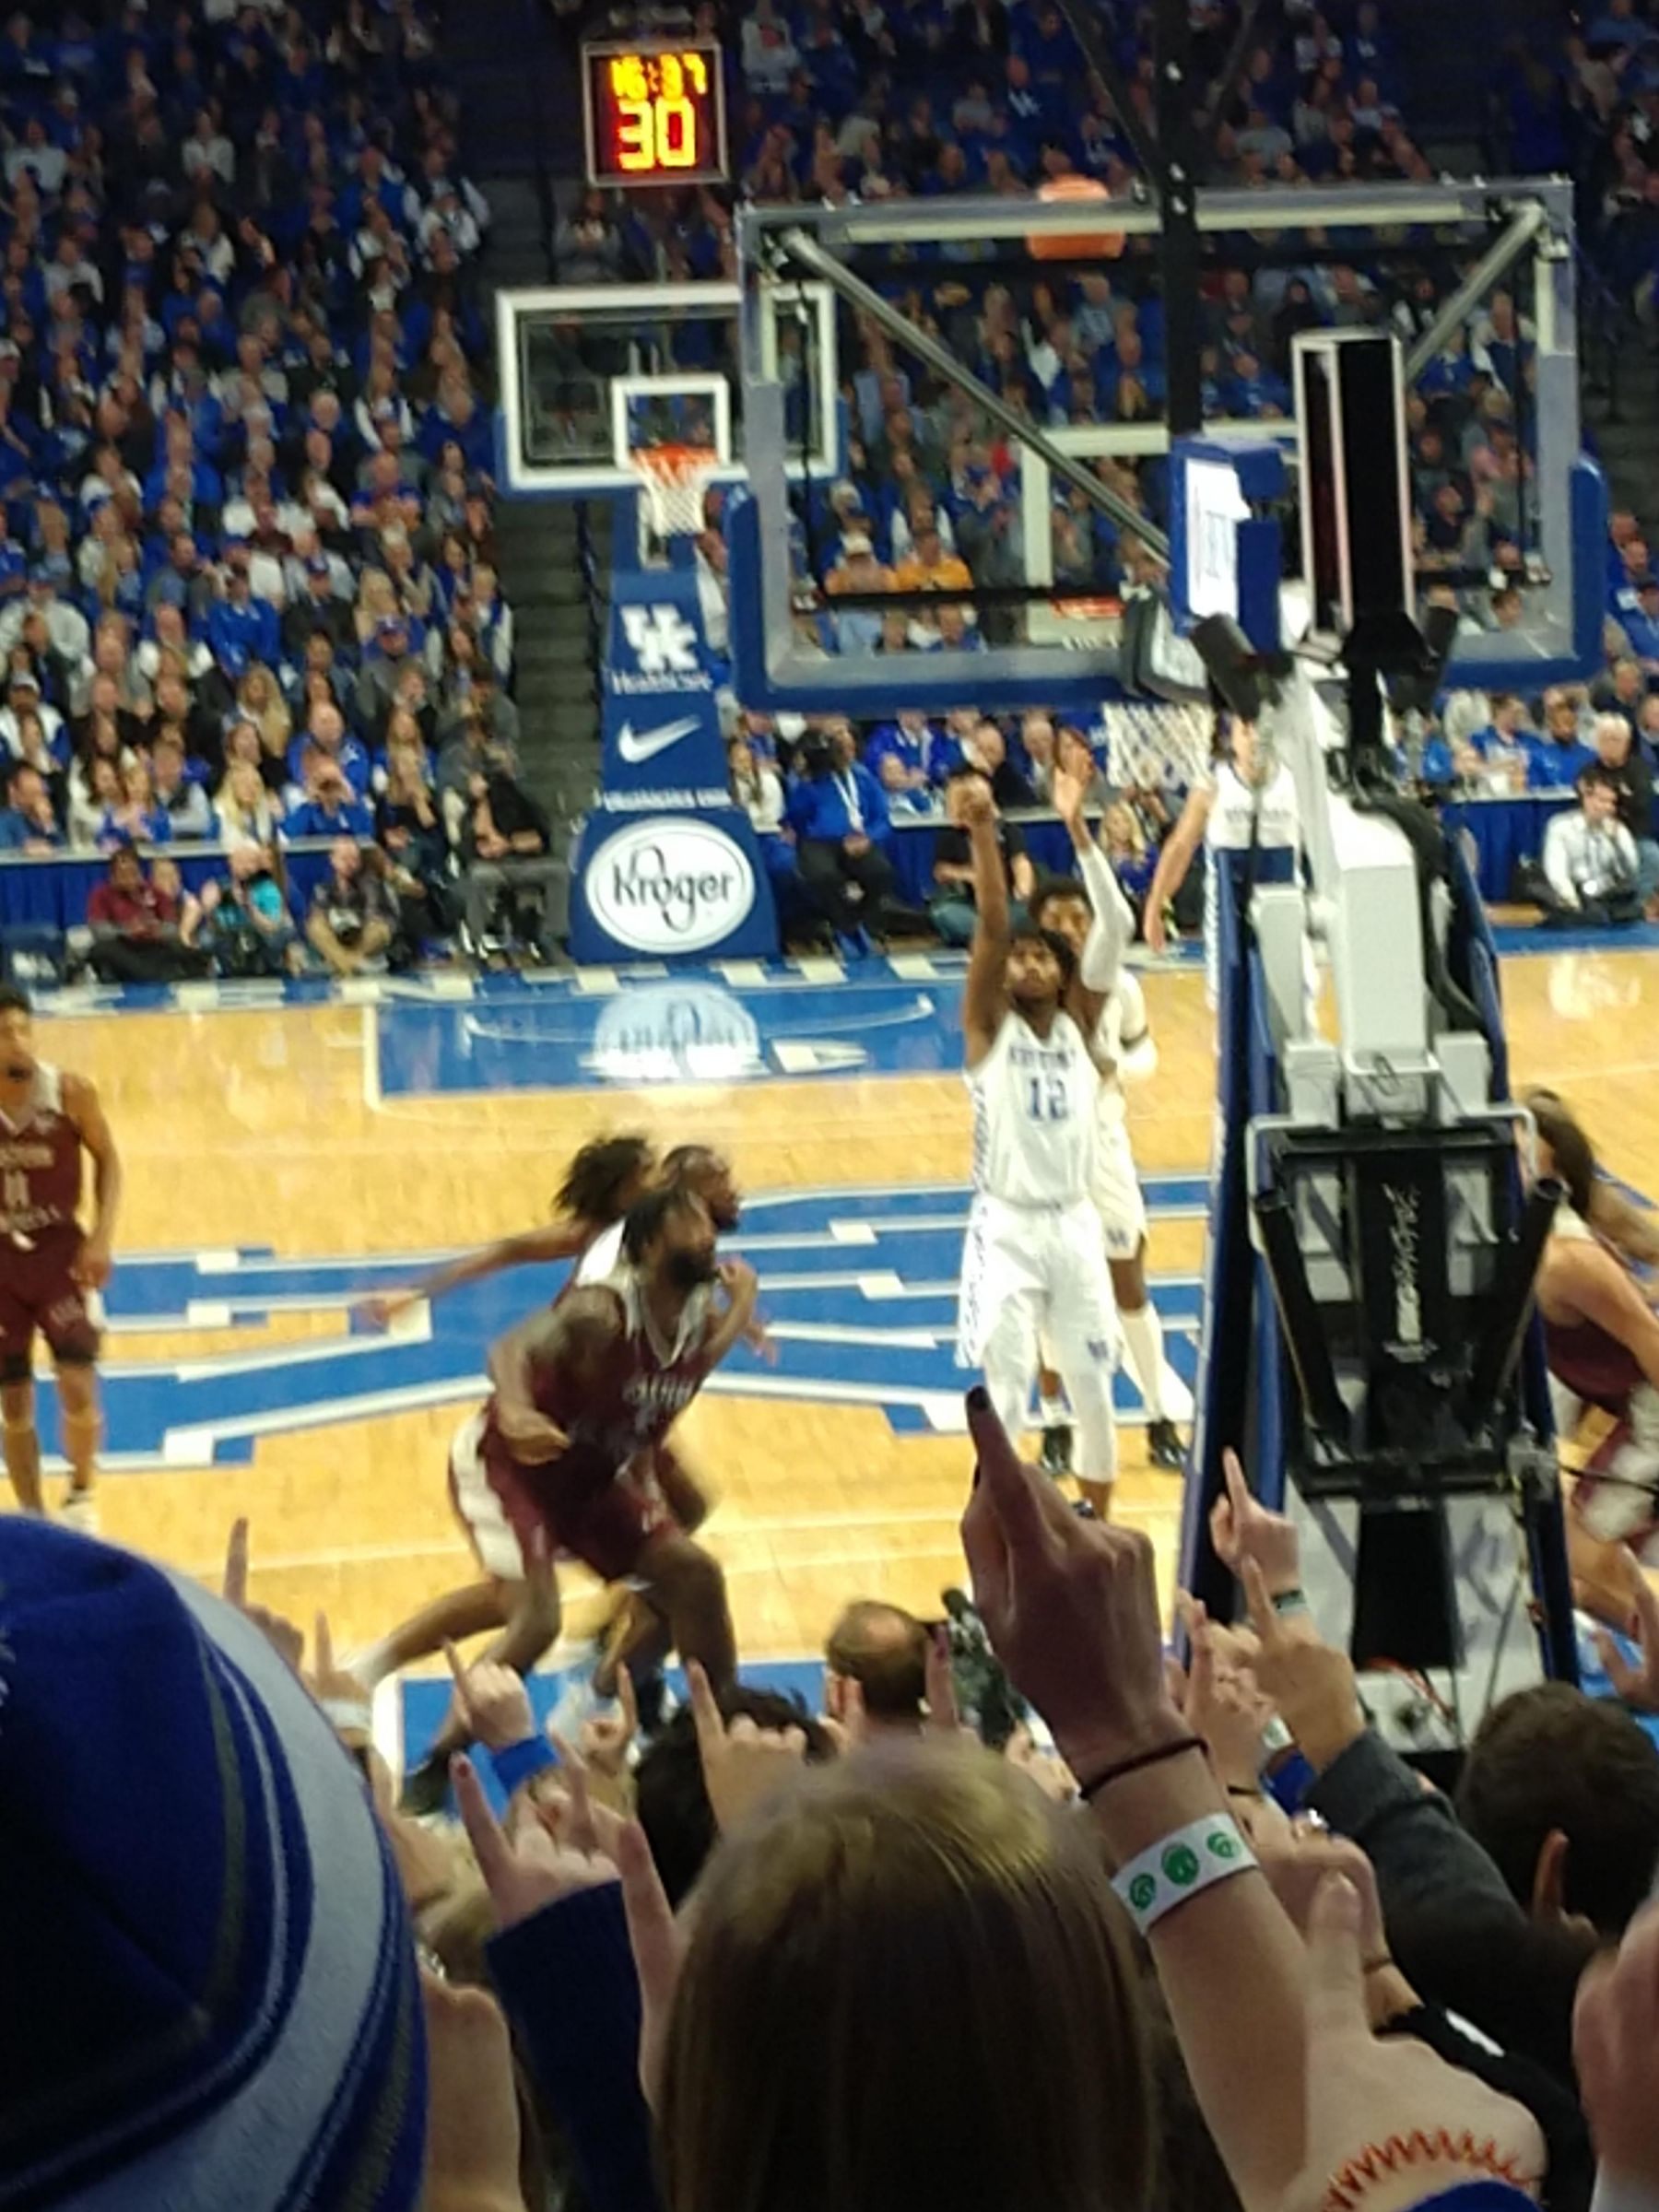 Seat View for Rupp Arena Section 40, Row MM, Seat 3